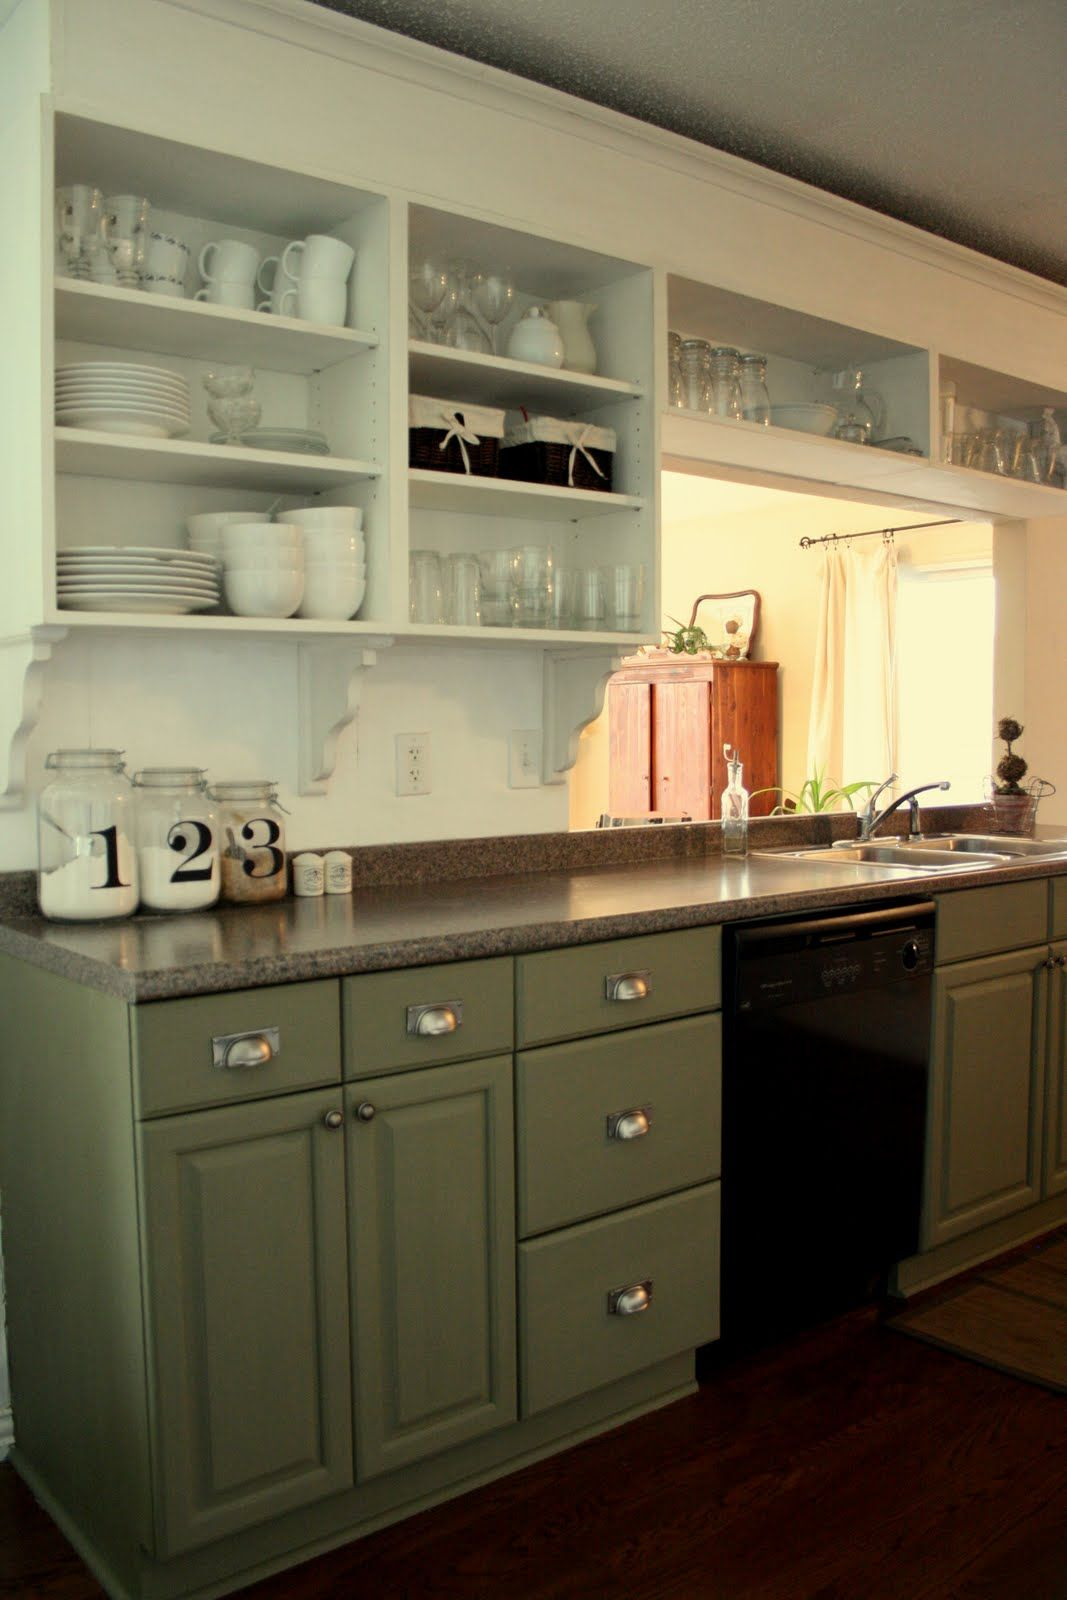 Black Base Cabinets White Upper Cabinets Green Lowers White Uppers With White Subway Tile And A